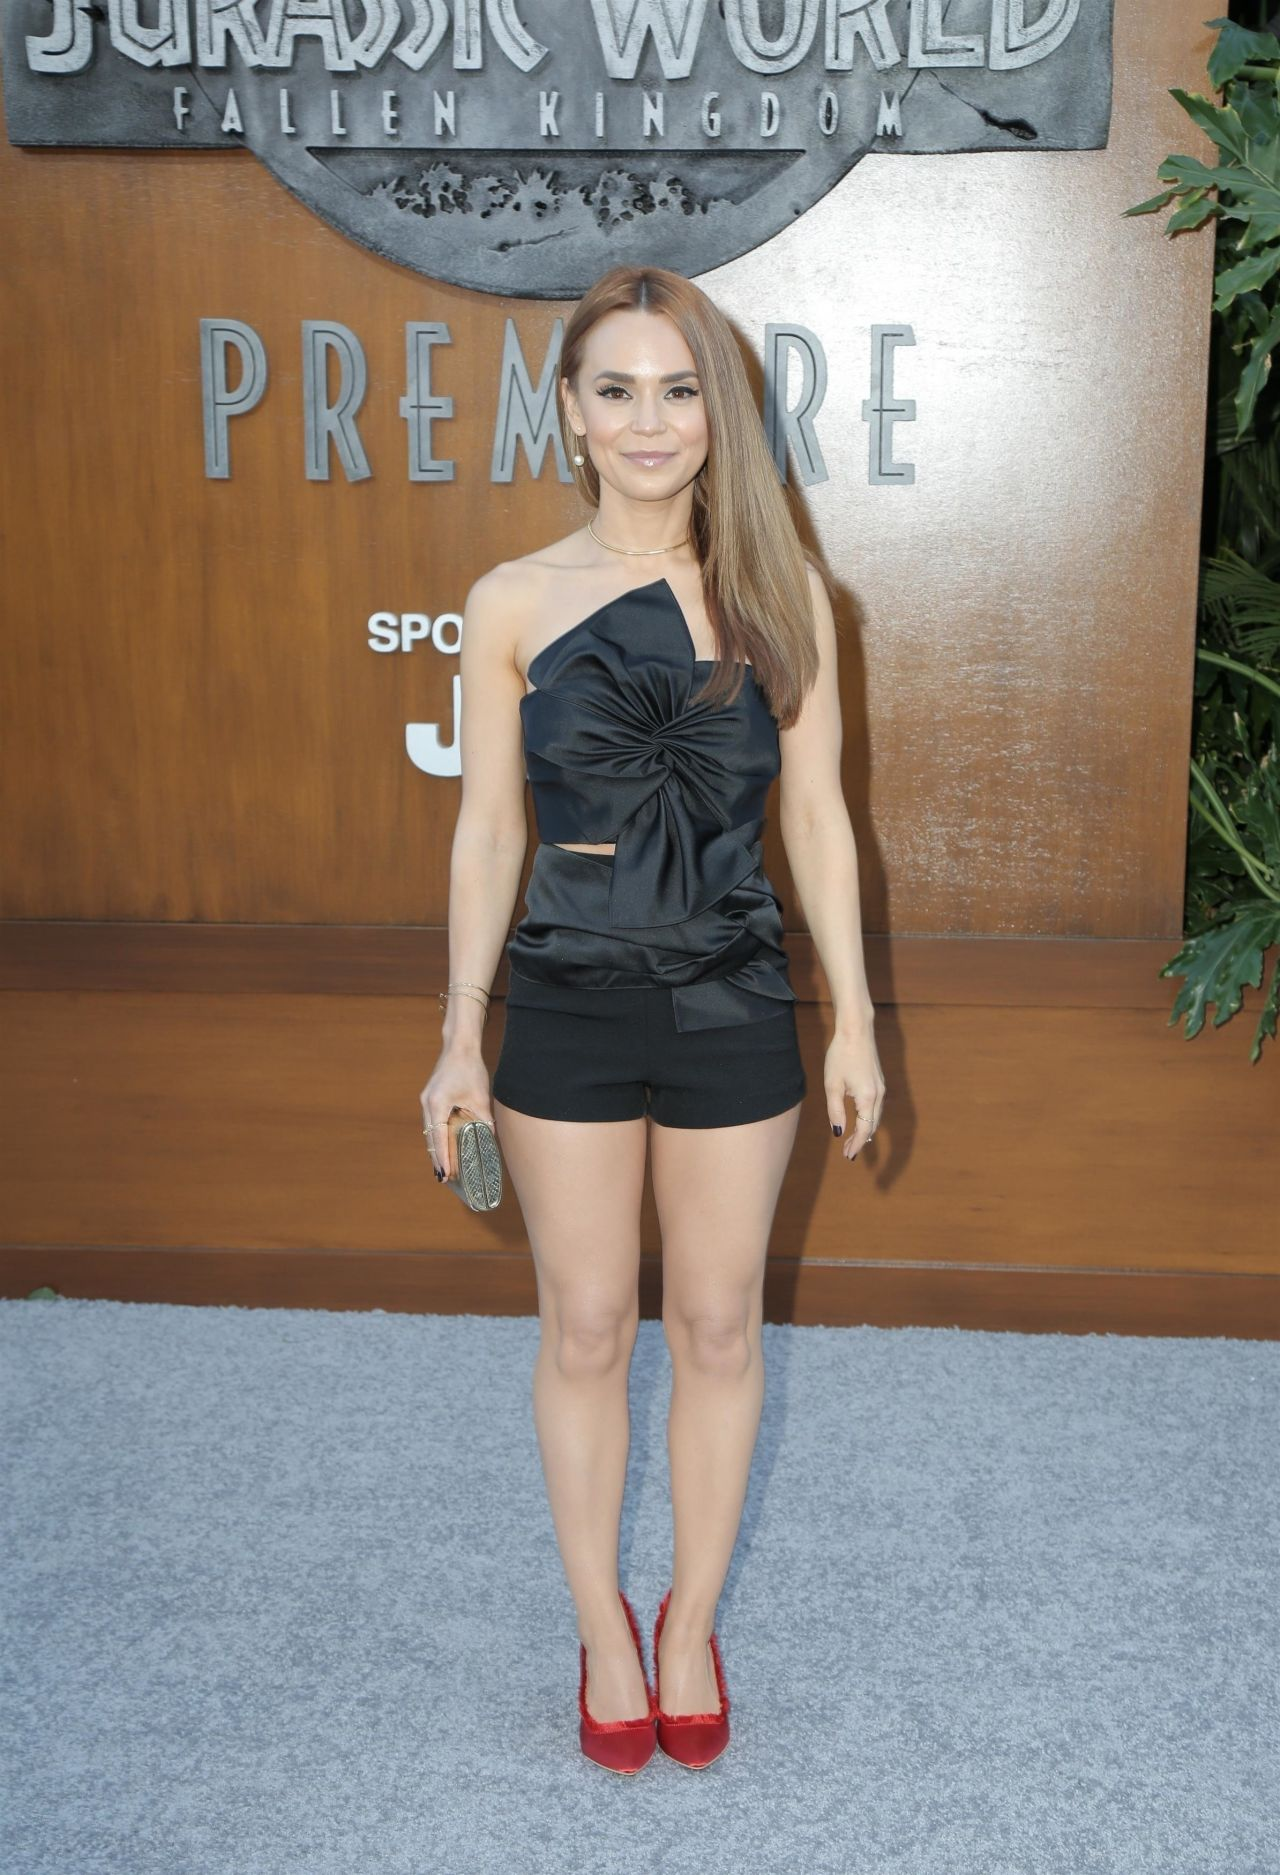 Rosanna Pansino Jurassic World Fallen Kingdom